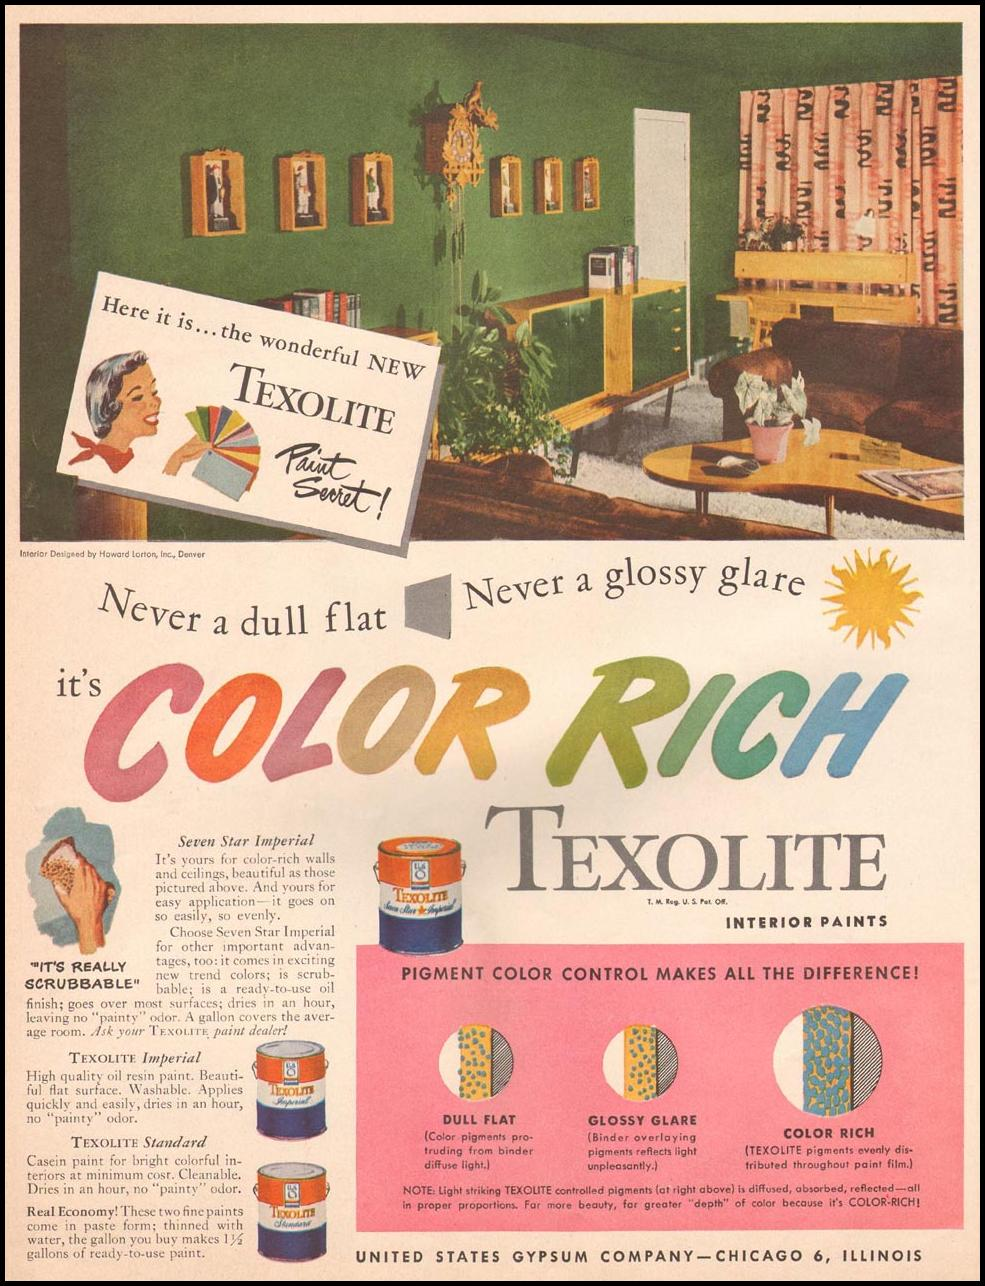 TEXOLITE COLOR RICH INTERIOR PAINTS LIFE 04/30/1951 p. 84